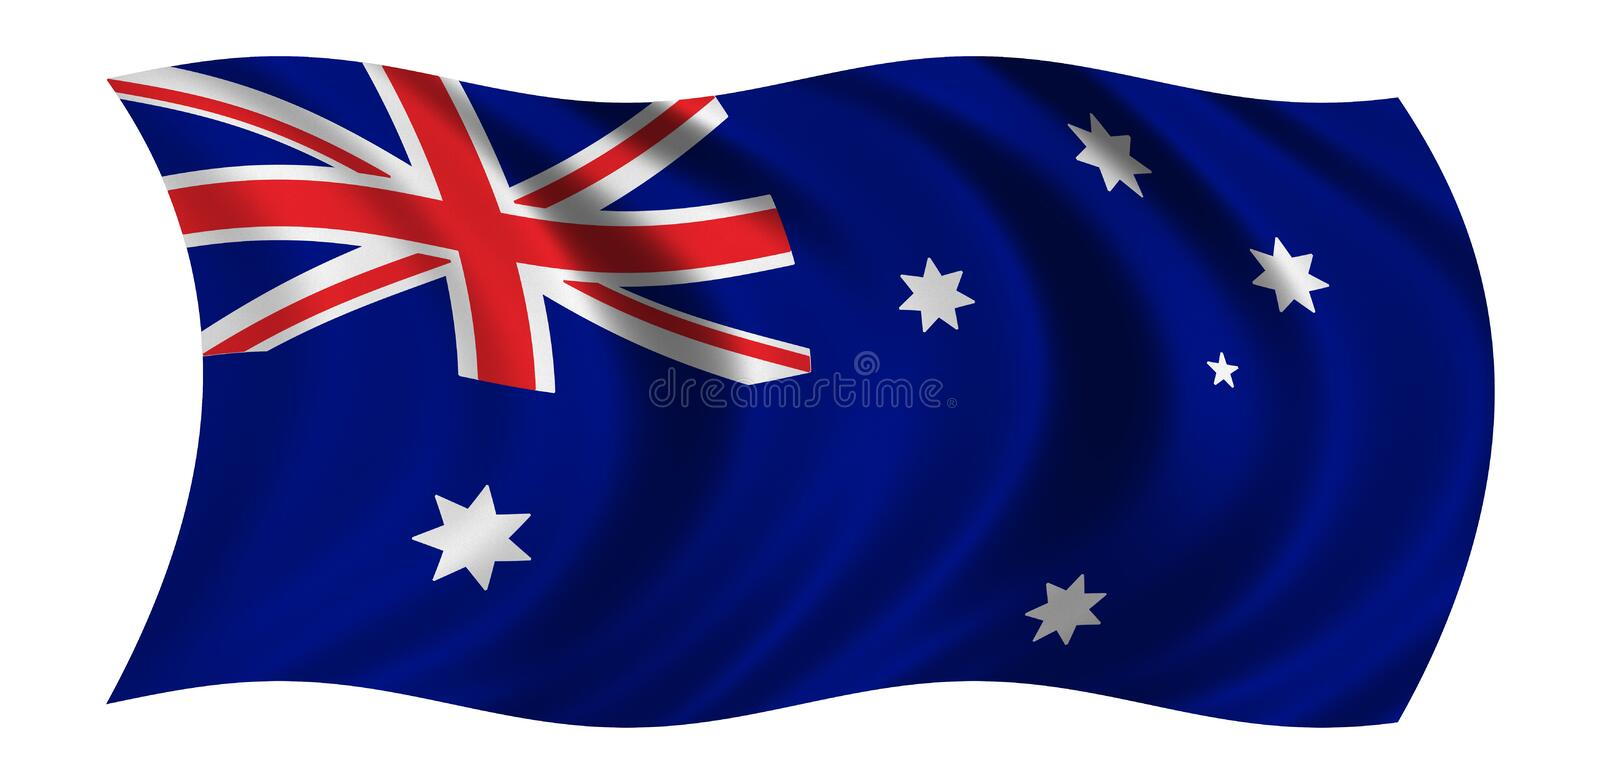 Download Bandierina australiana illustrazione di stock. Illustrazione di patriot - 203448